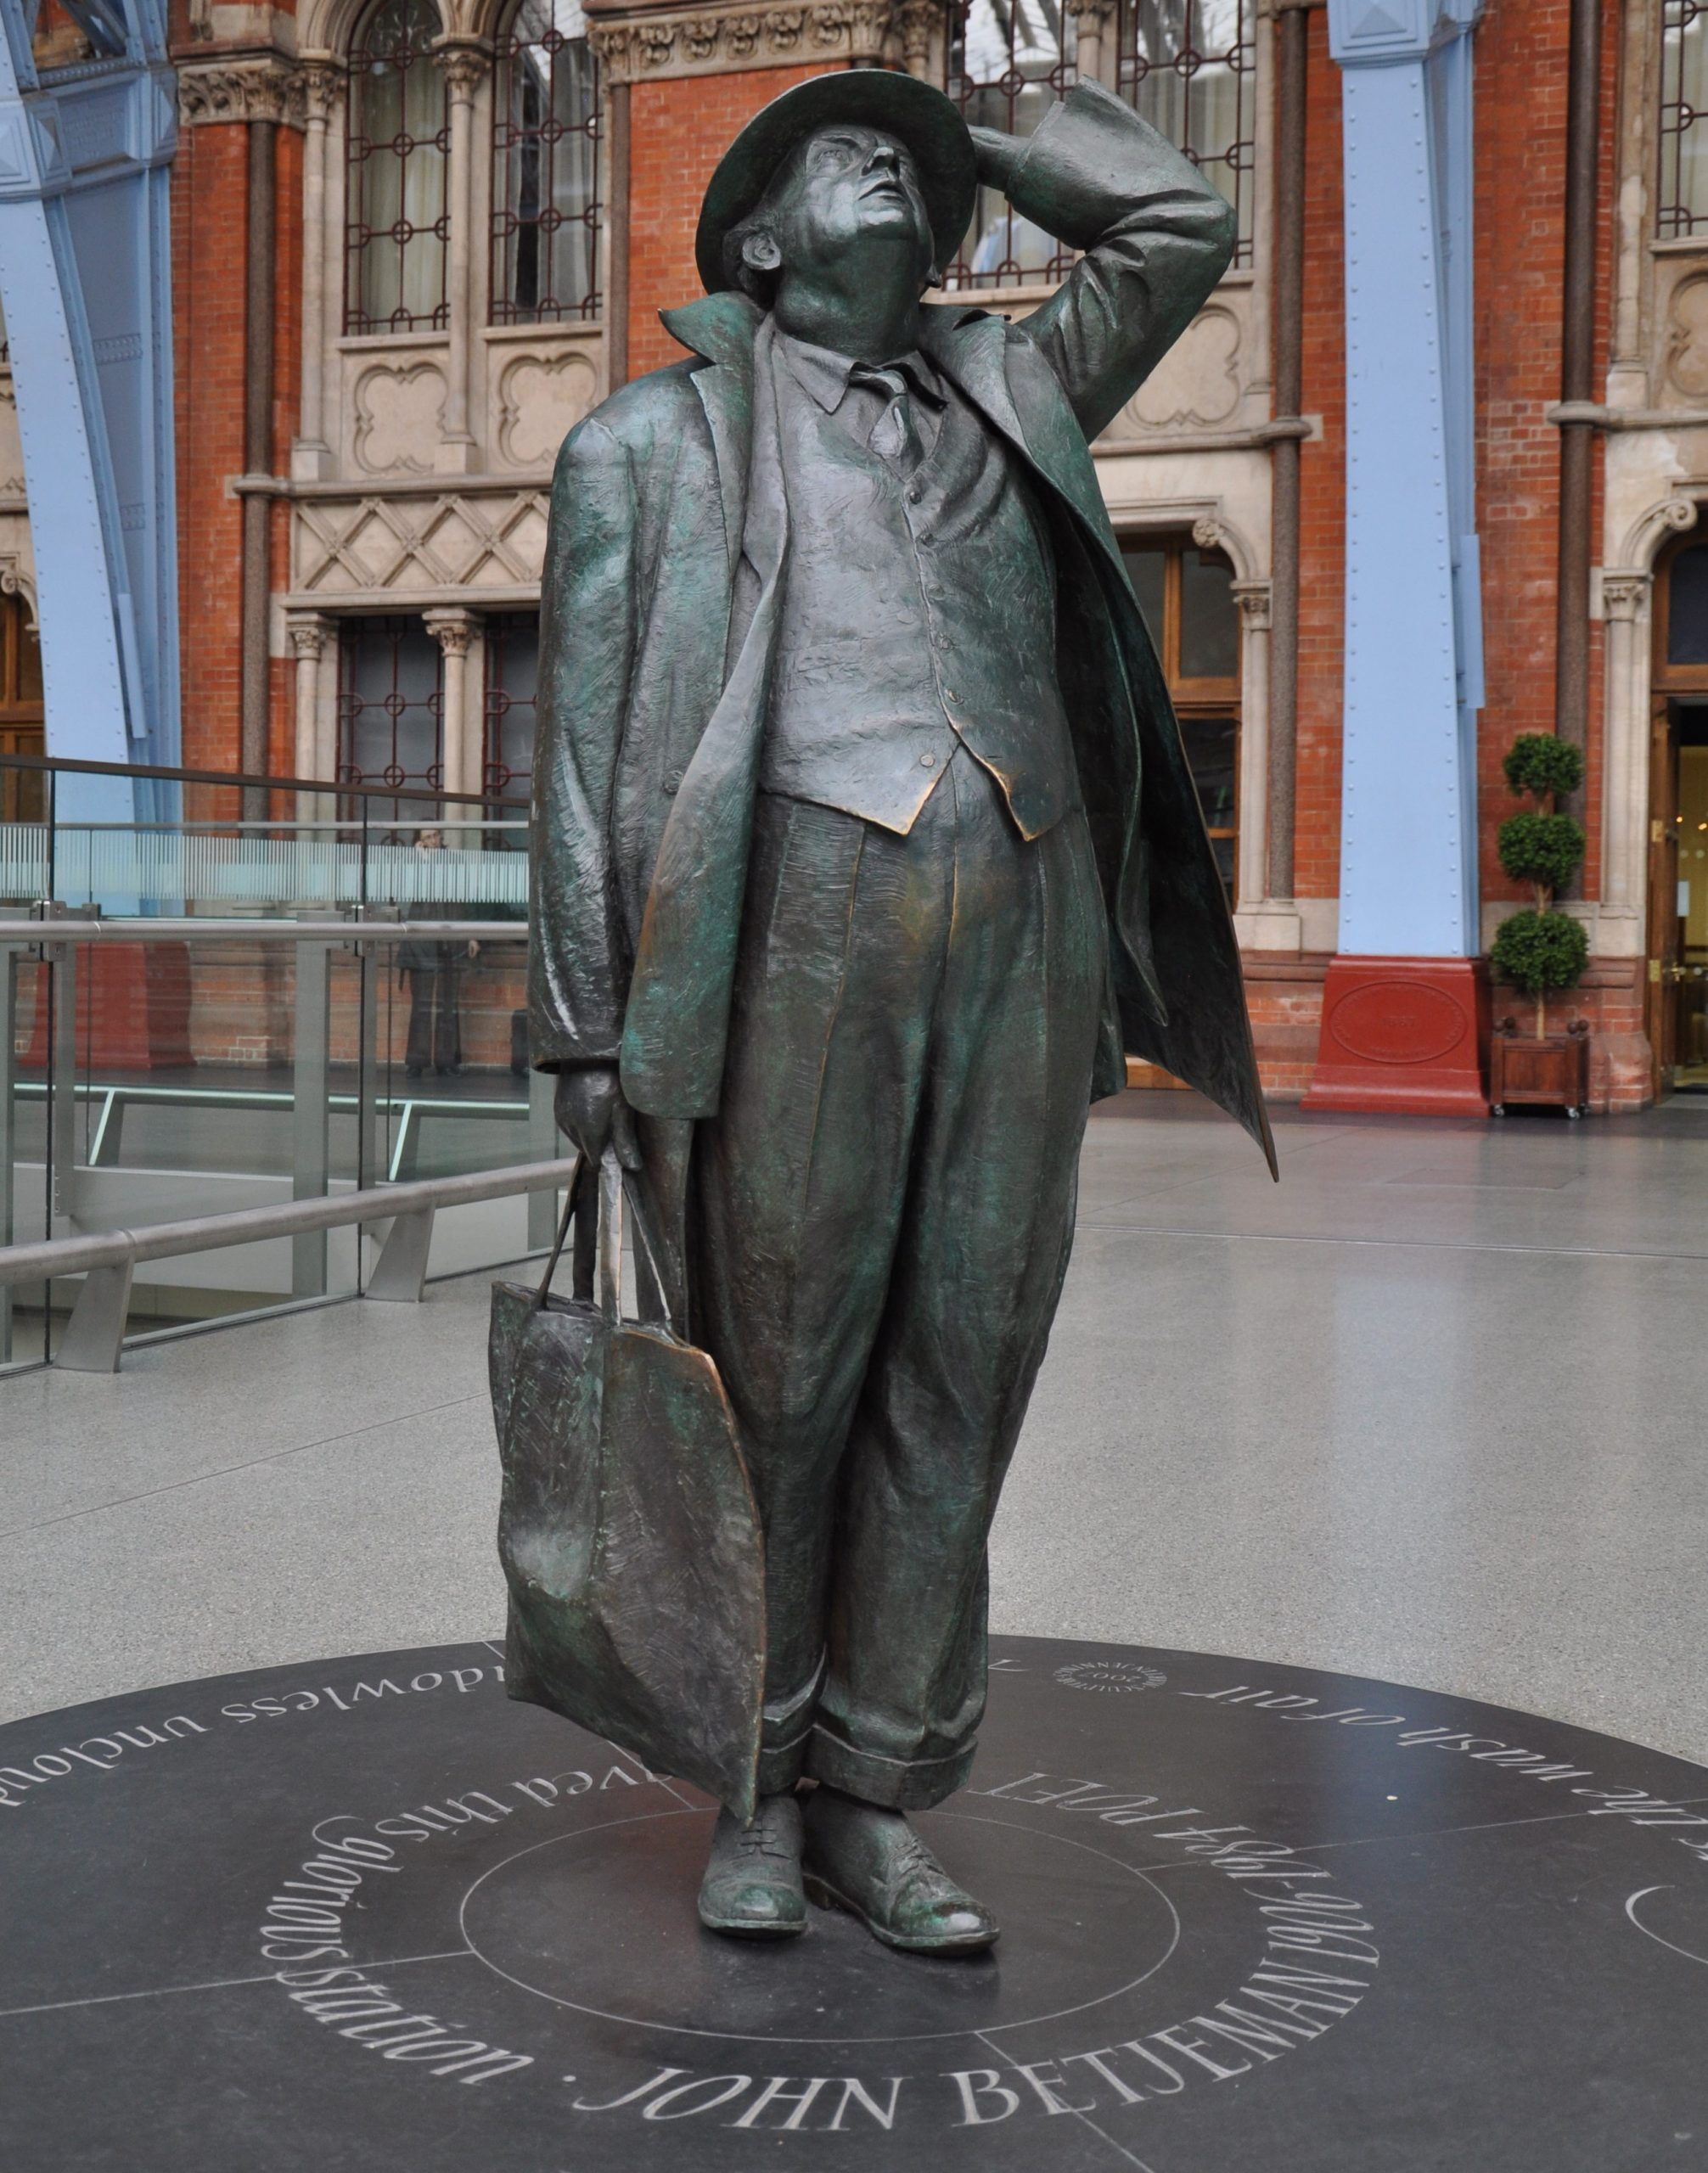 The statue of John Betjeman at St Pancras railway station, by the sculptor Martin Jennings. The statue was designed and cast in bronze in 2007.